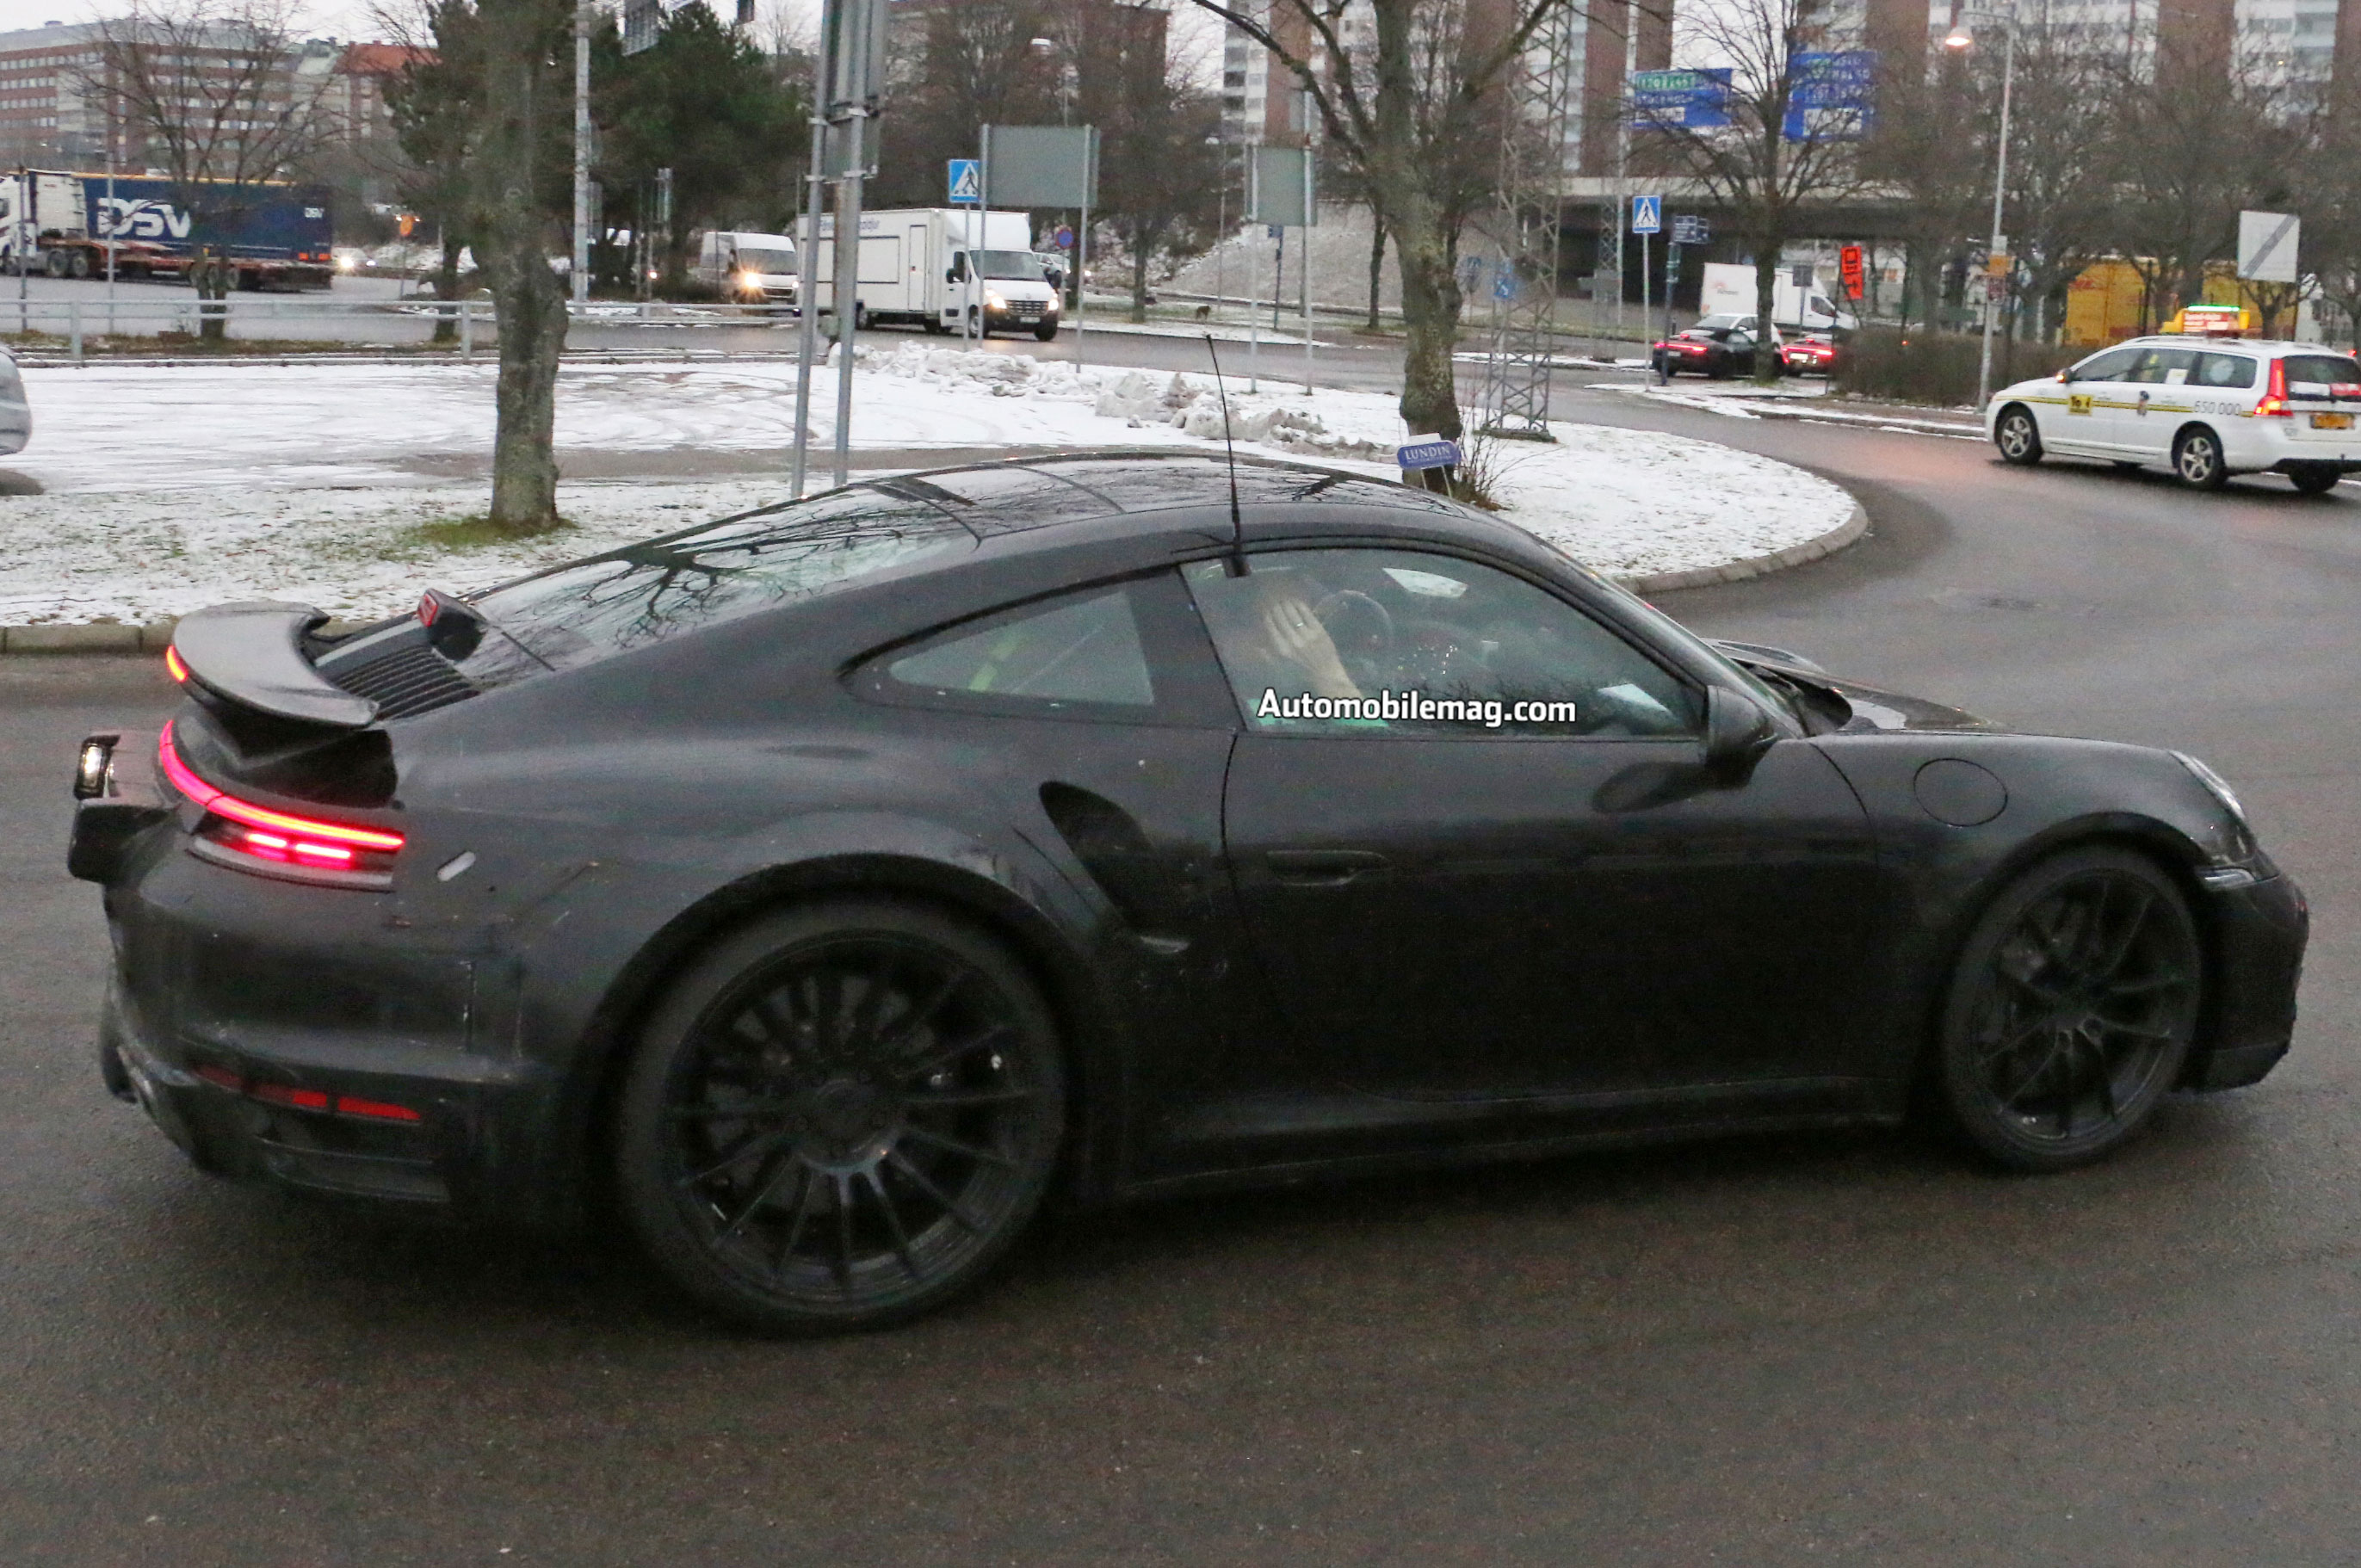 2019 Porsche 911 Turbo S >> Next-Gen Porsche 911 Turbo Spied | Automobile Magazine